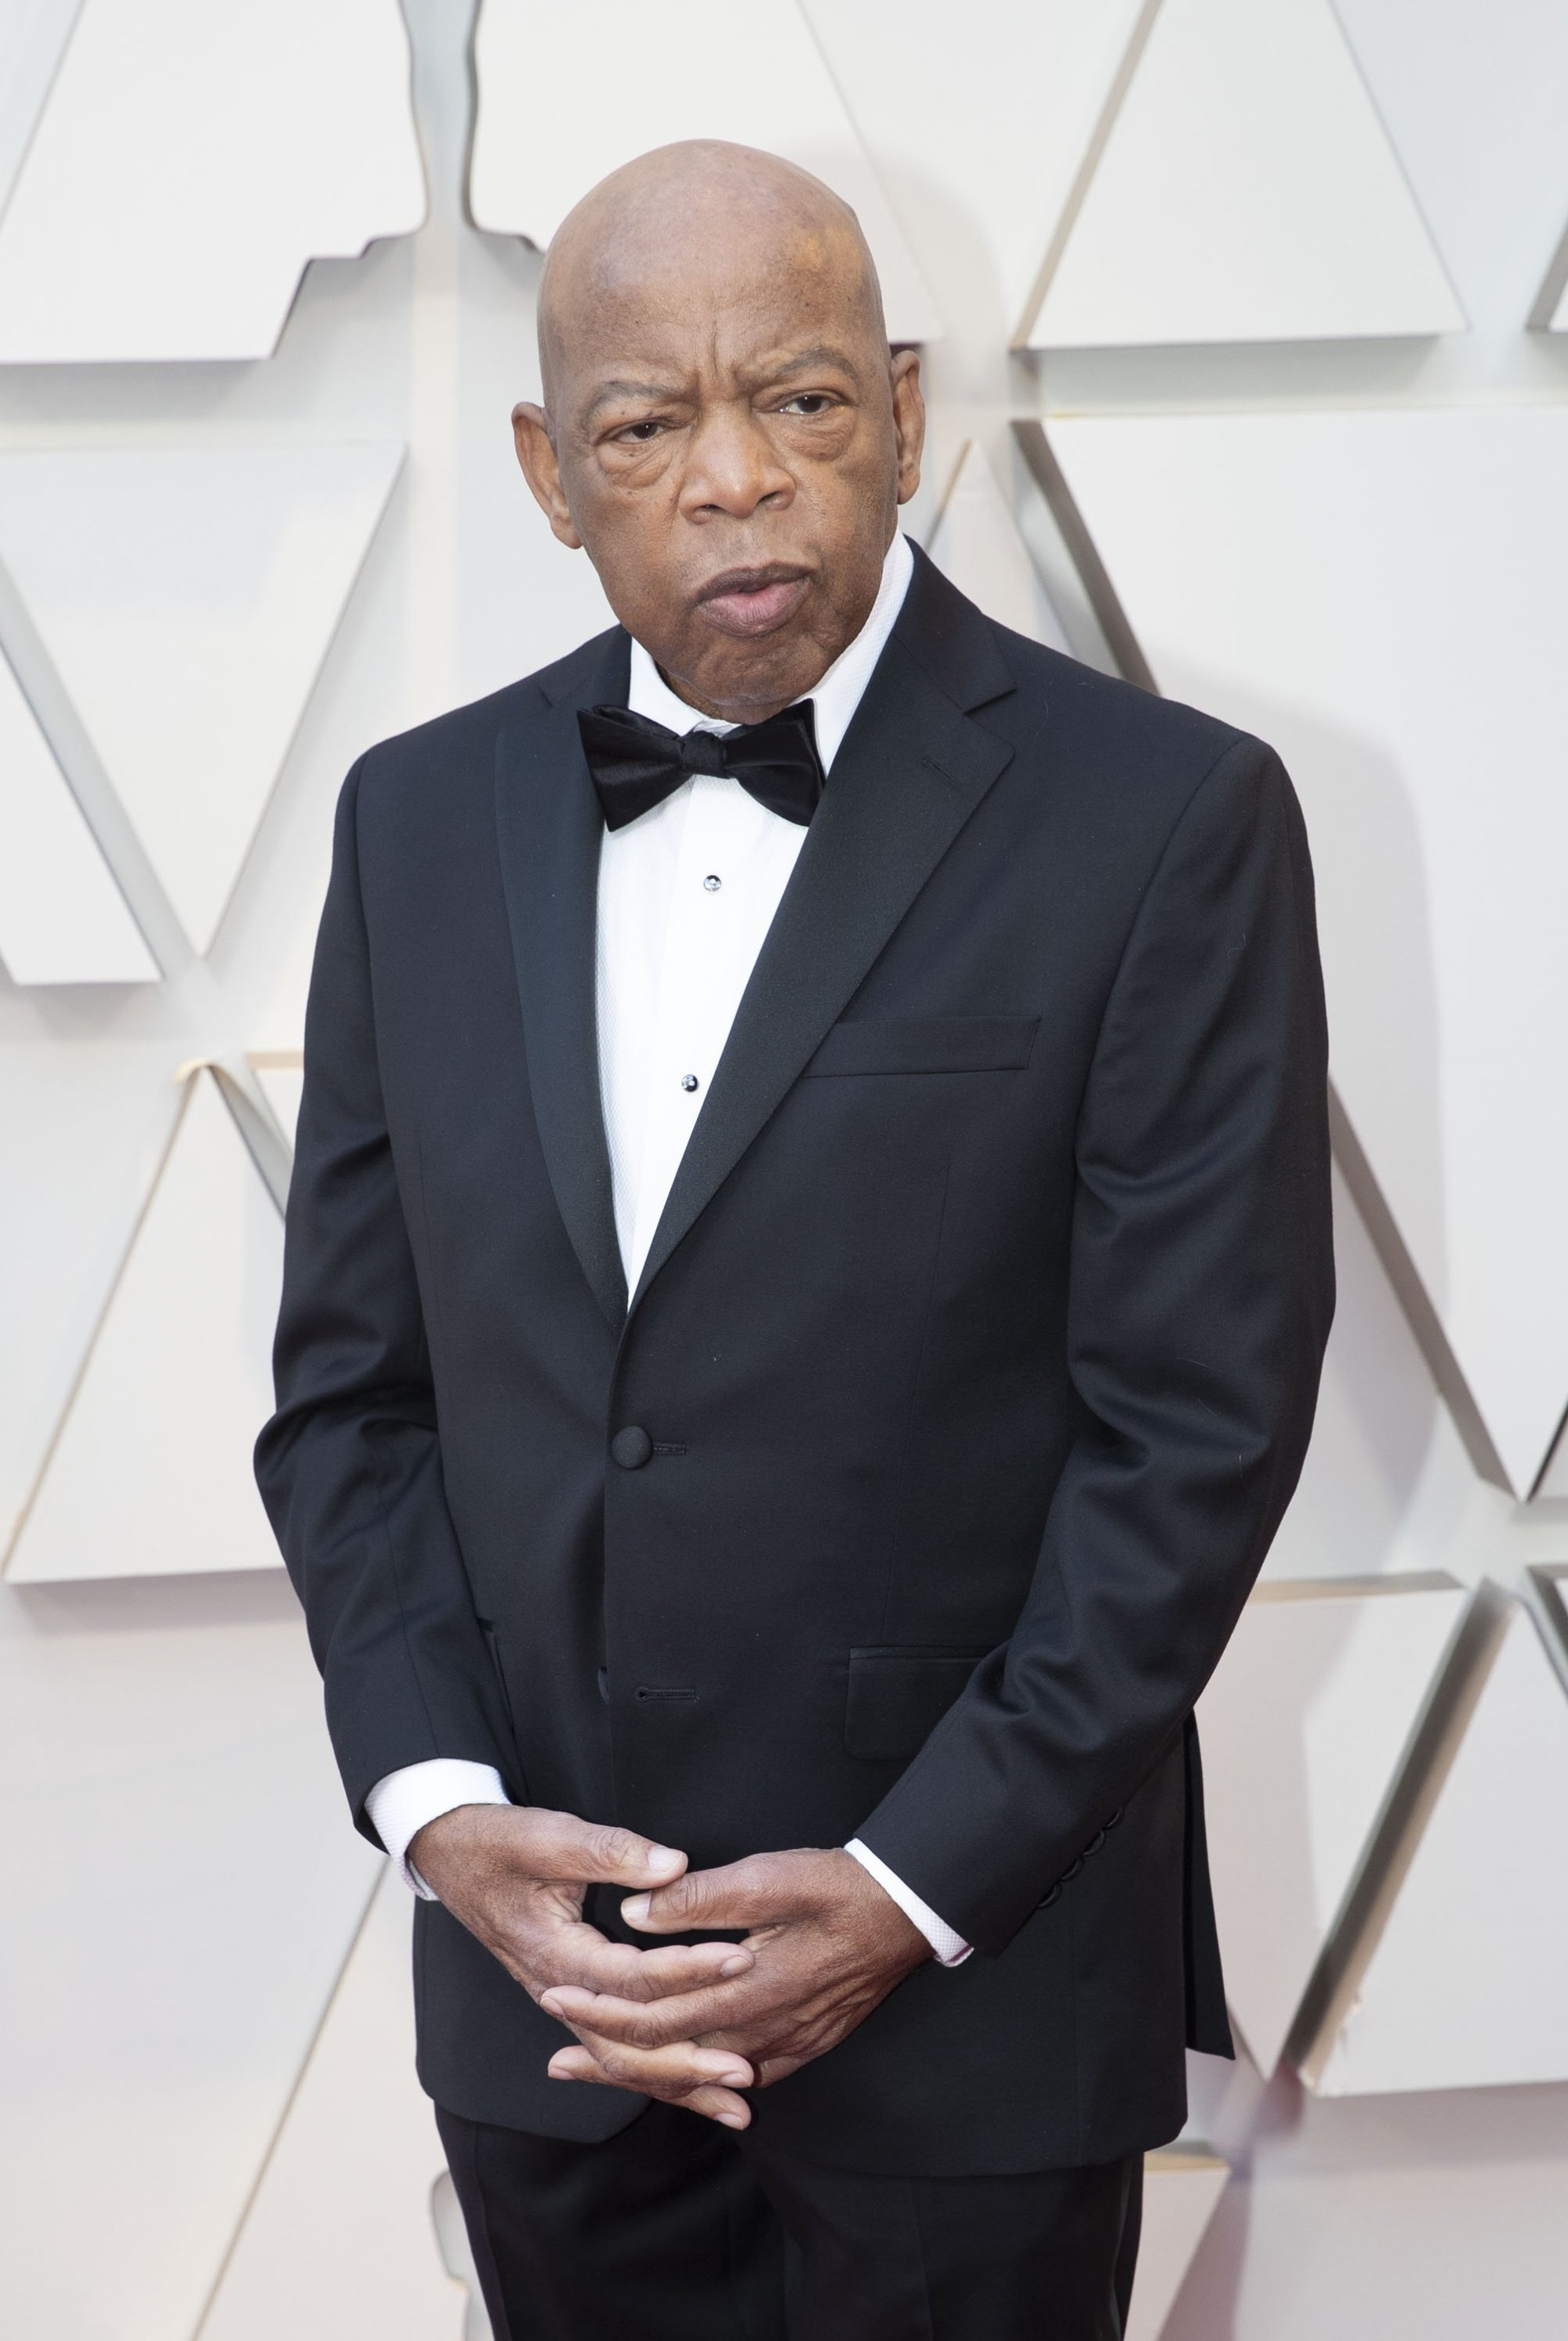 Rep. John Lewis: Red Carpet from the The 91st Oscar broadcast on Sunday, Feb. 24, 2019, at the Dolby Theatre.